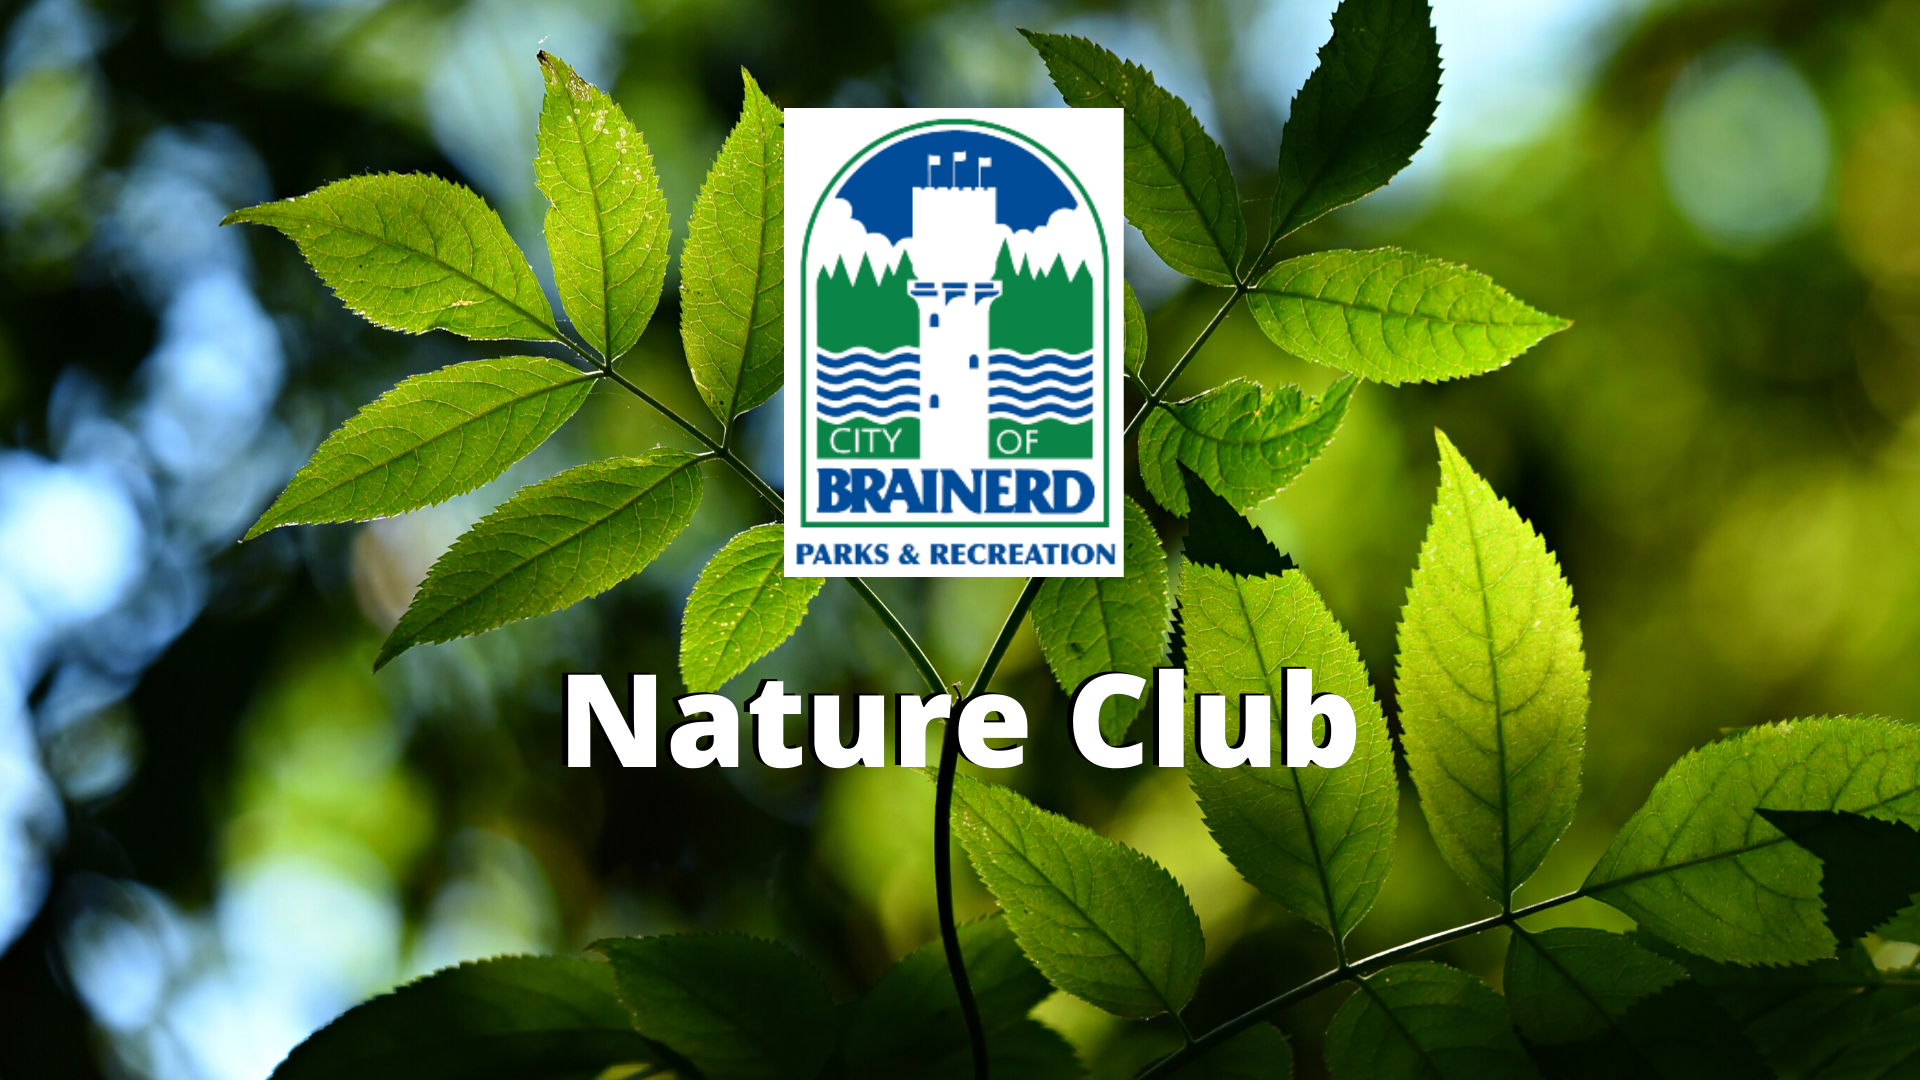 Brainerd Nature Club